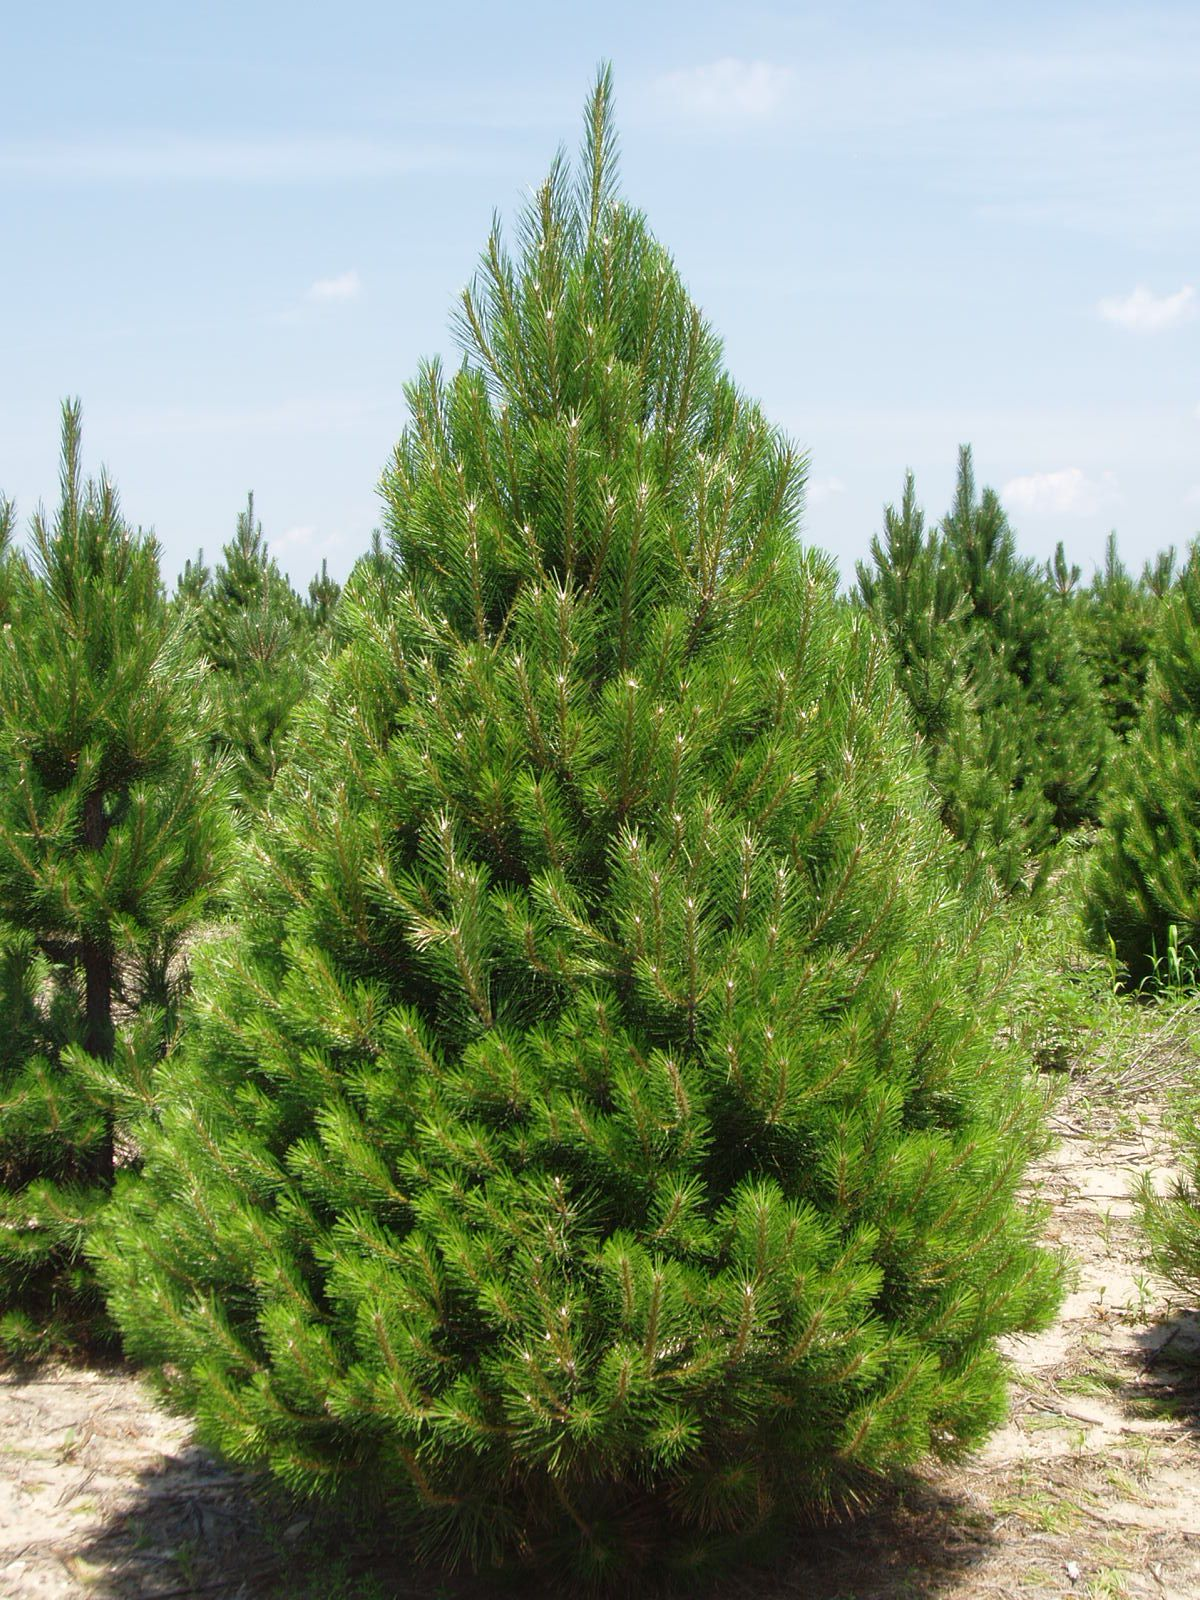 List Of Trees In Michigan Grown Evergreen Balled Burled Nursery Stock